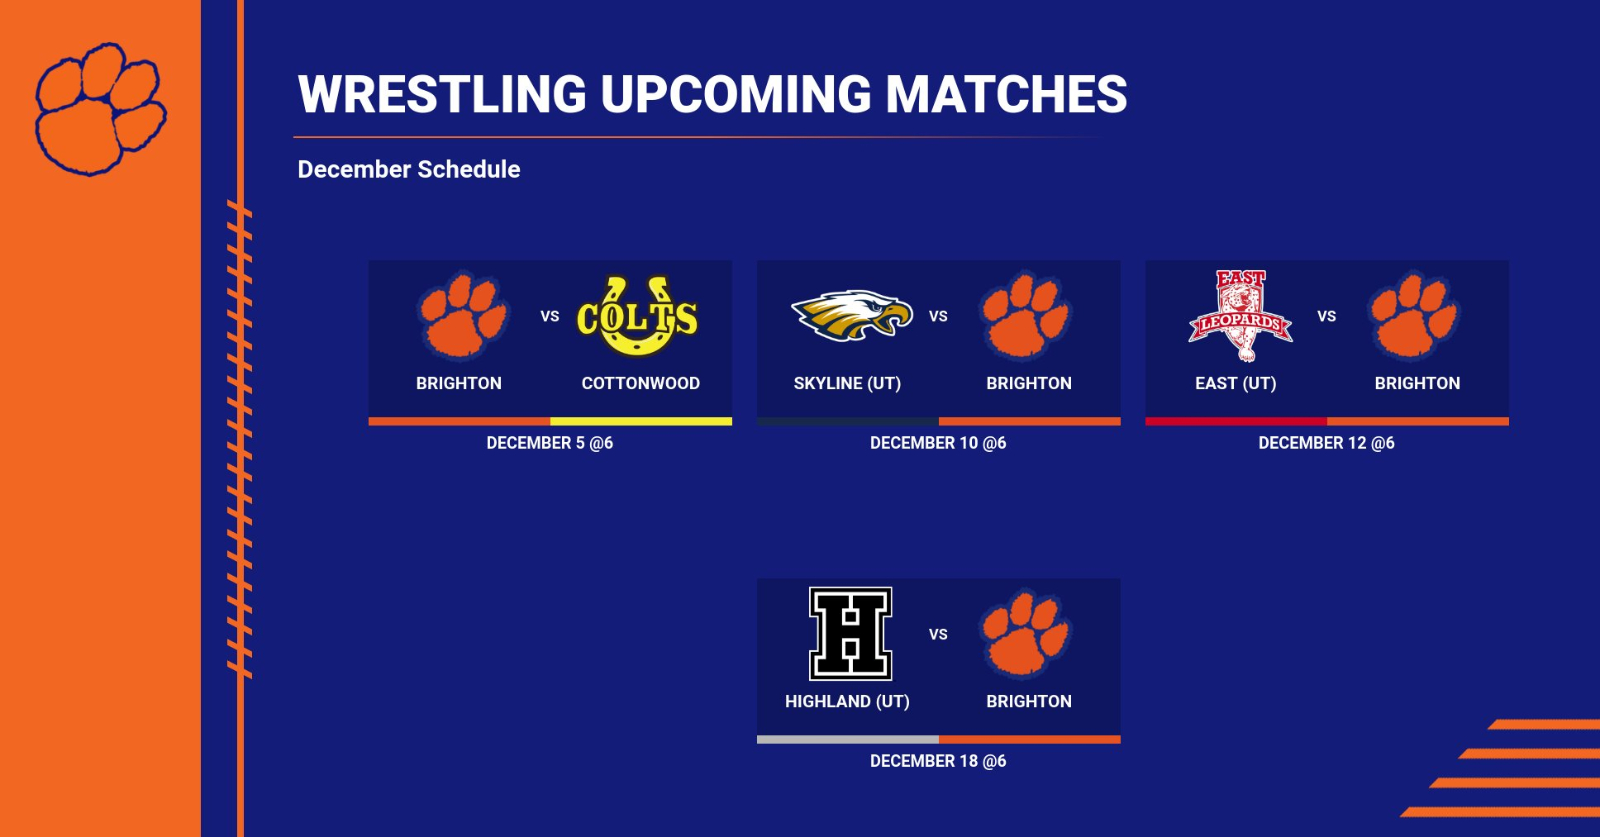 Wrestling: Upcoming Matches